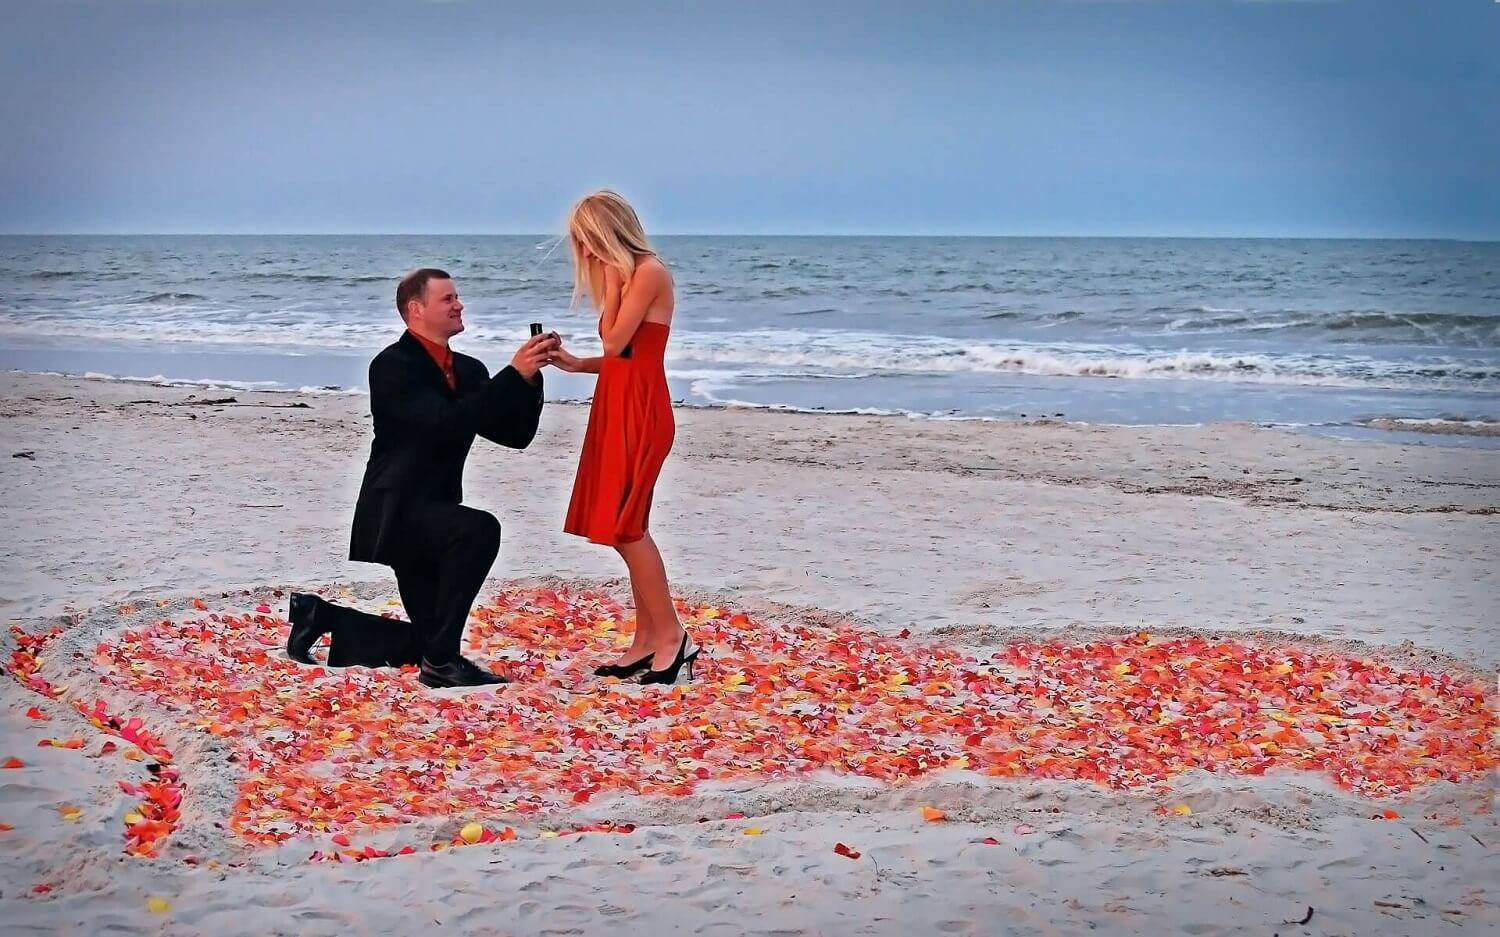 Hey Guys, You are Goin' to Propose Her: Don't Make These Proposal Mistakes